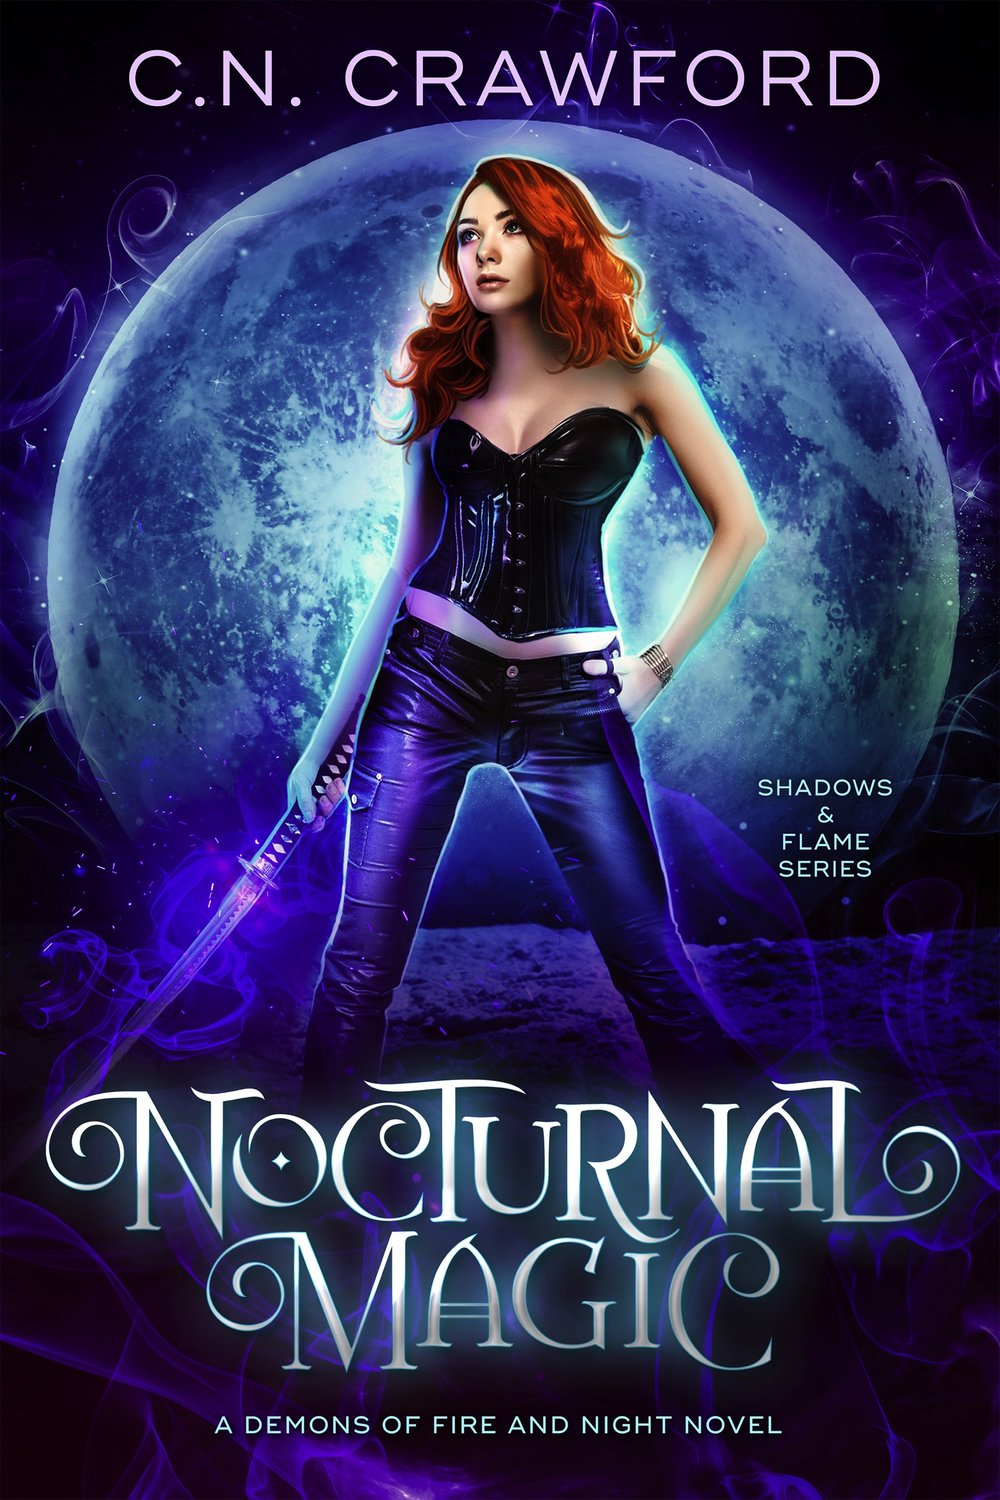 Book 2: Nocturnal Magic